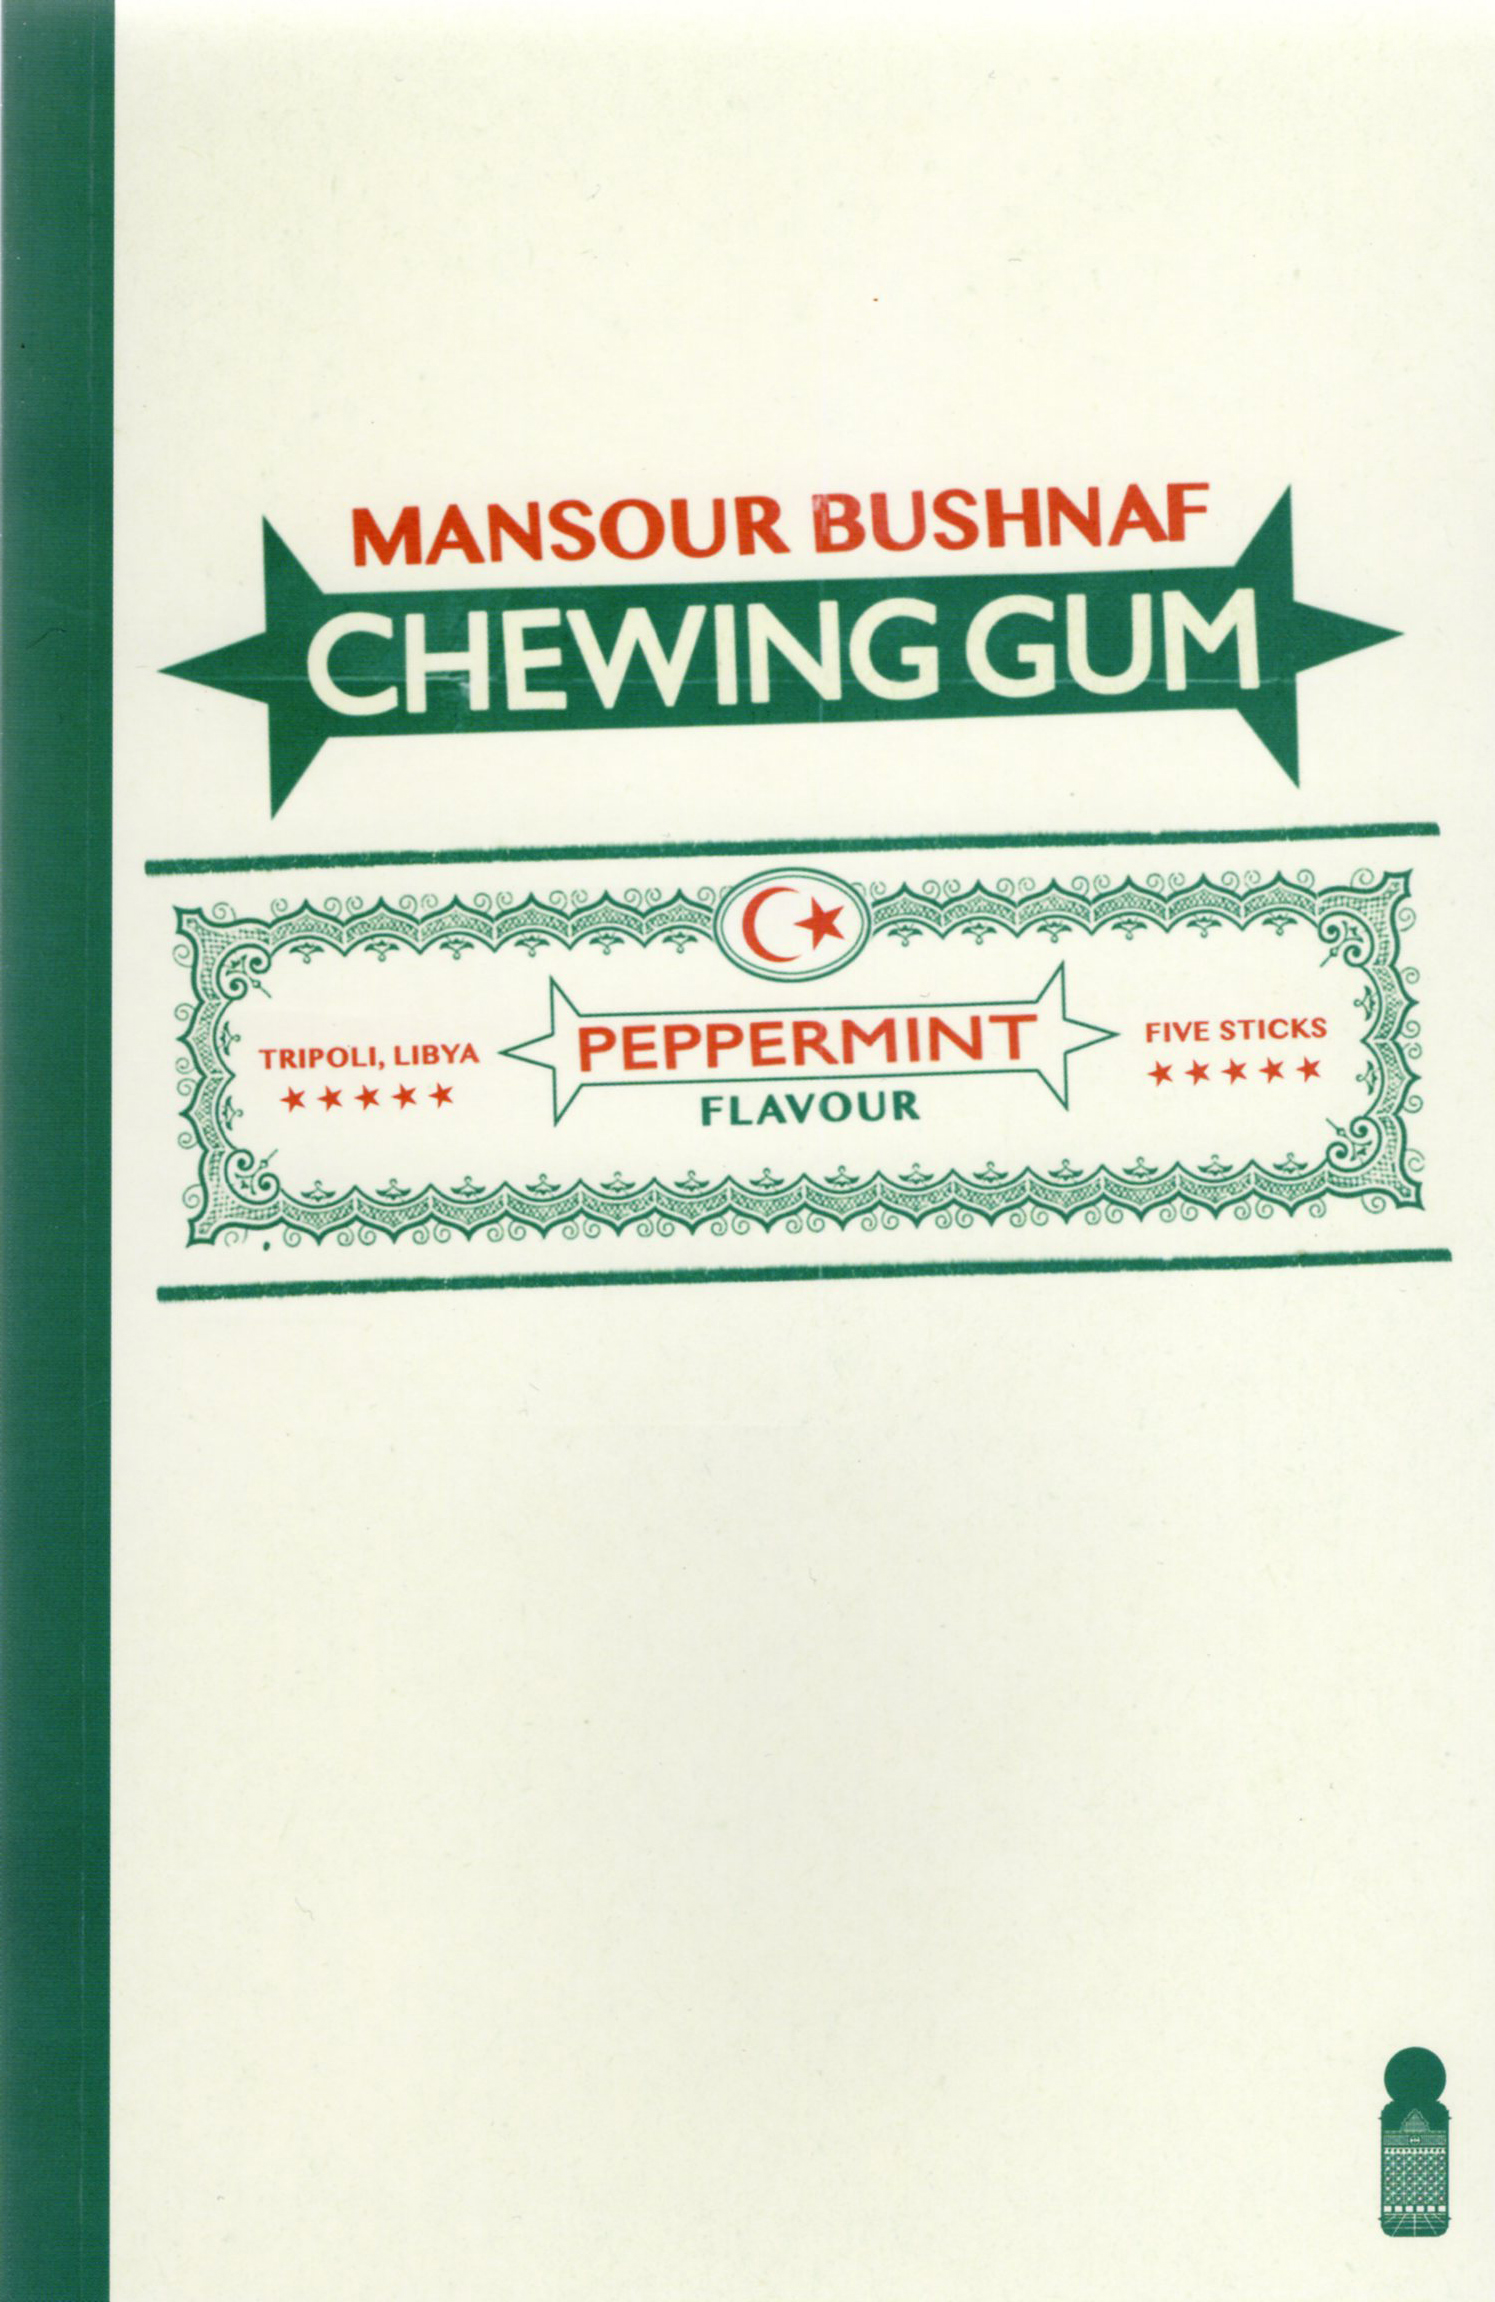 Chewinggum_book cover